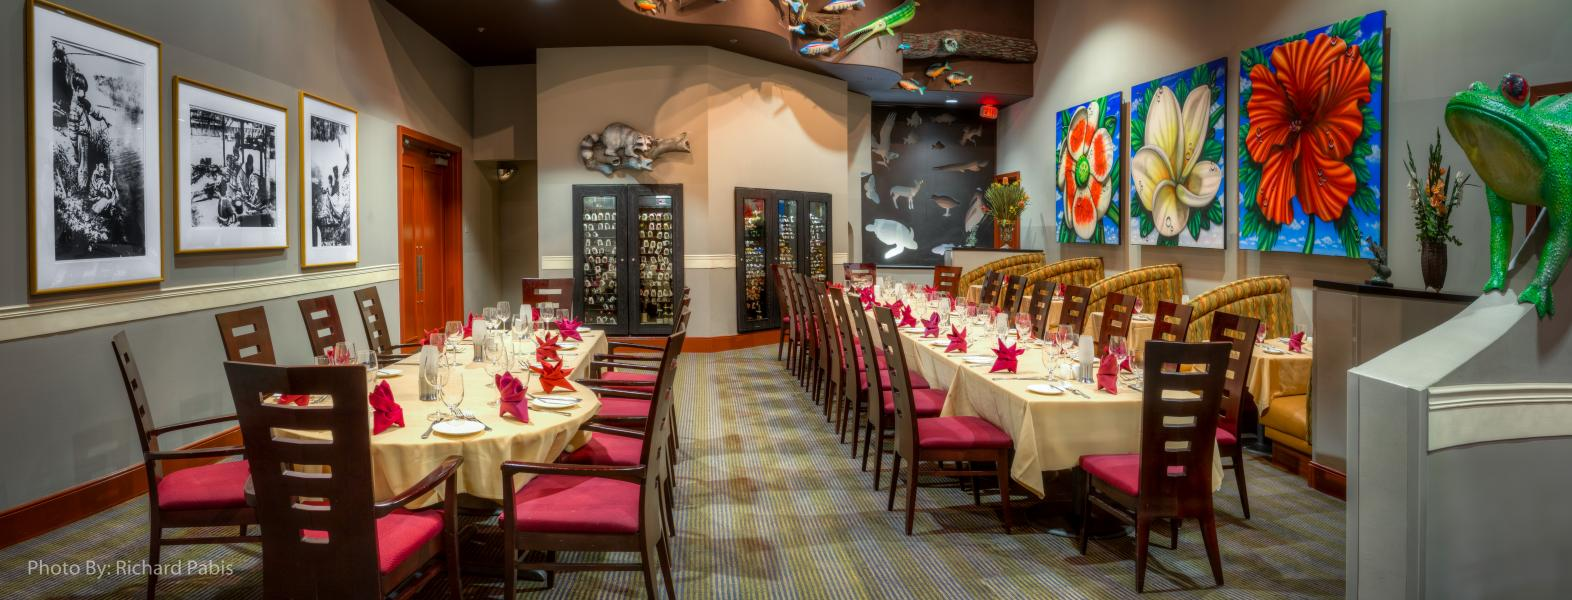 Everglades Restaurant - semi-private group dining